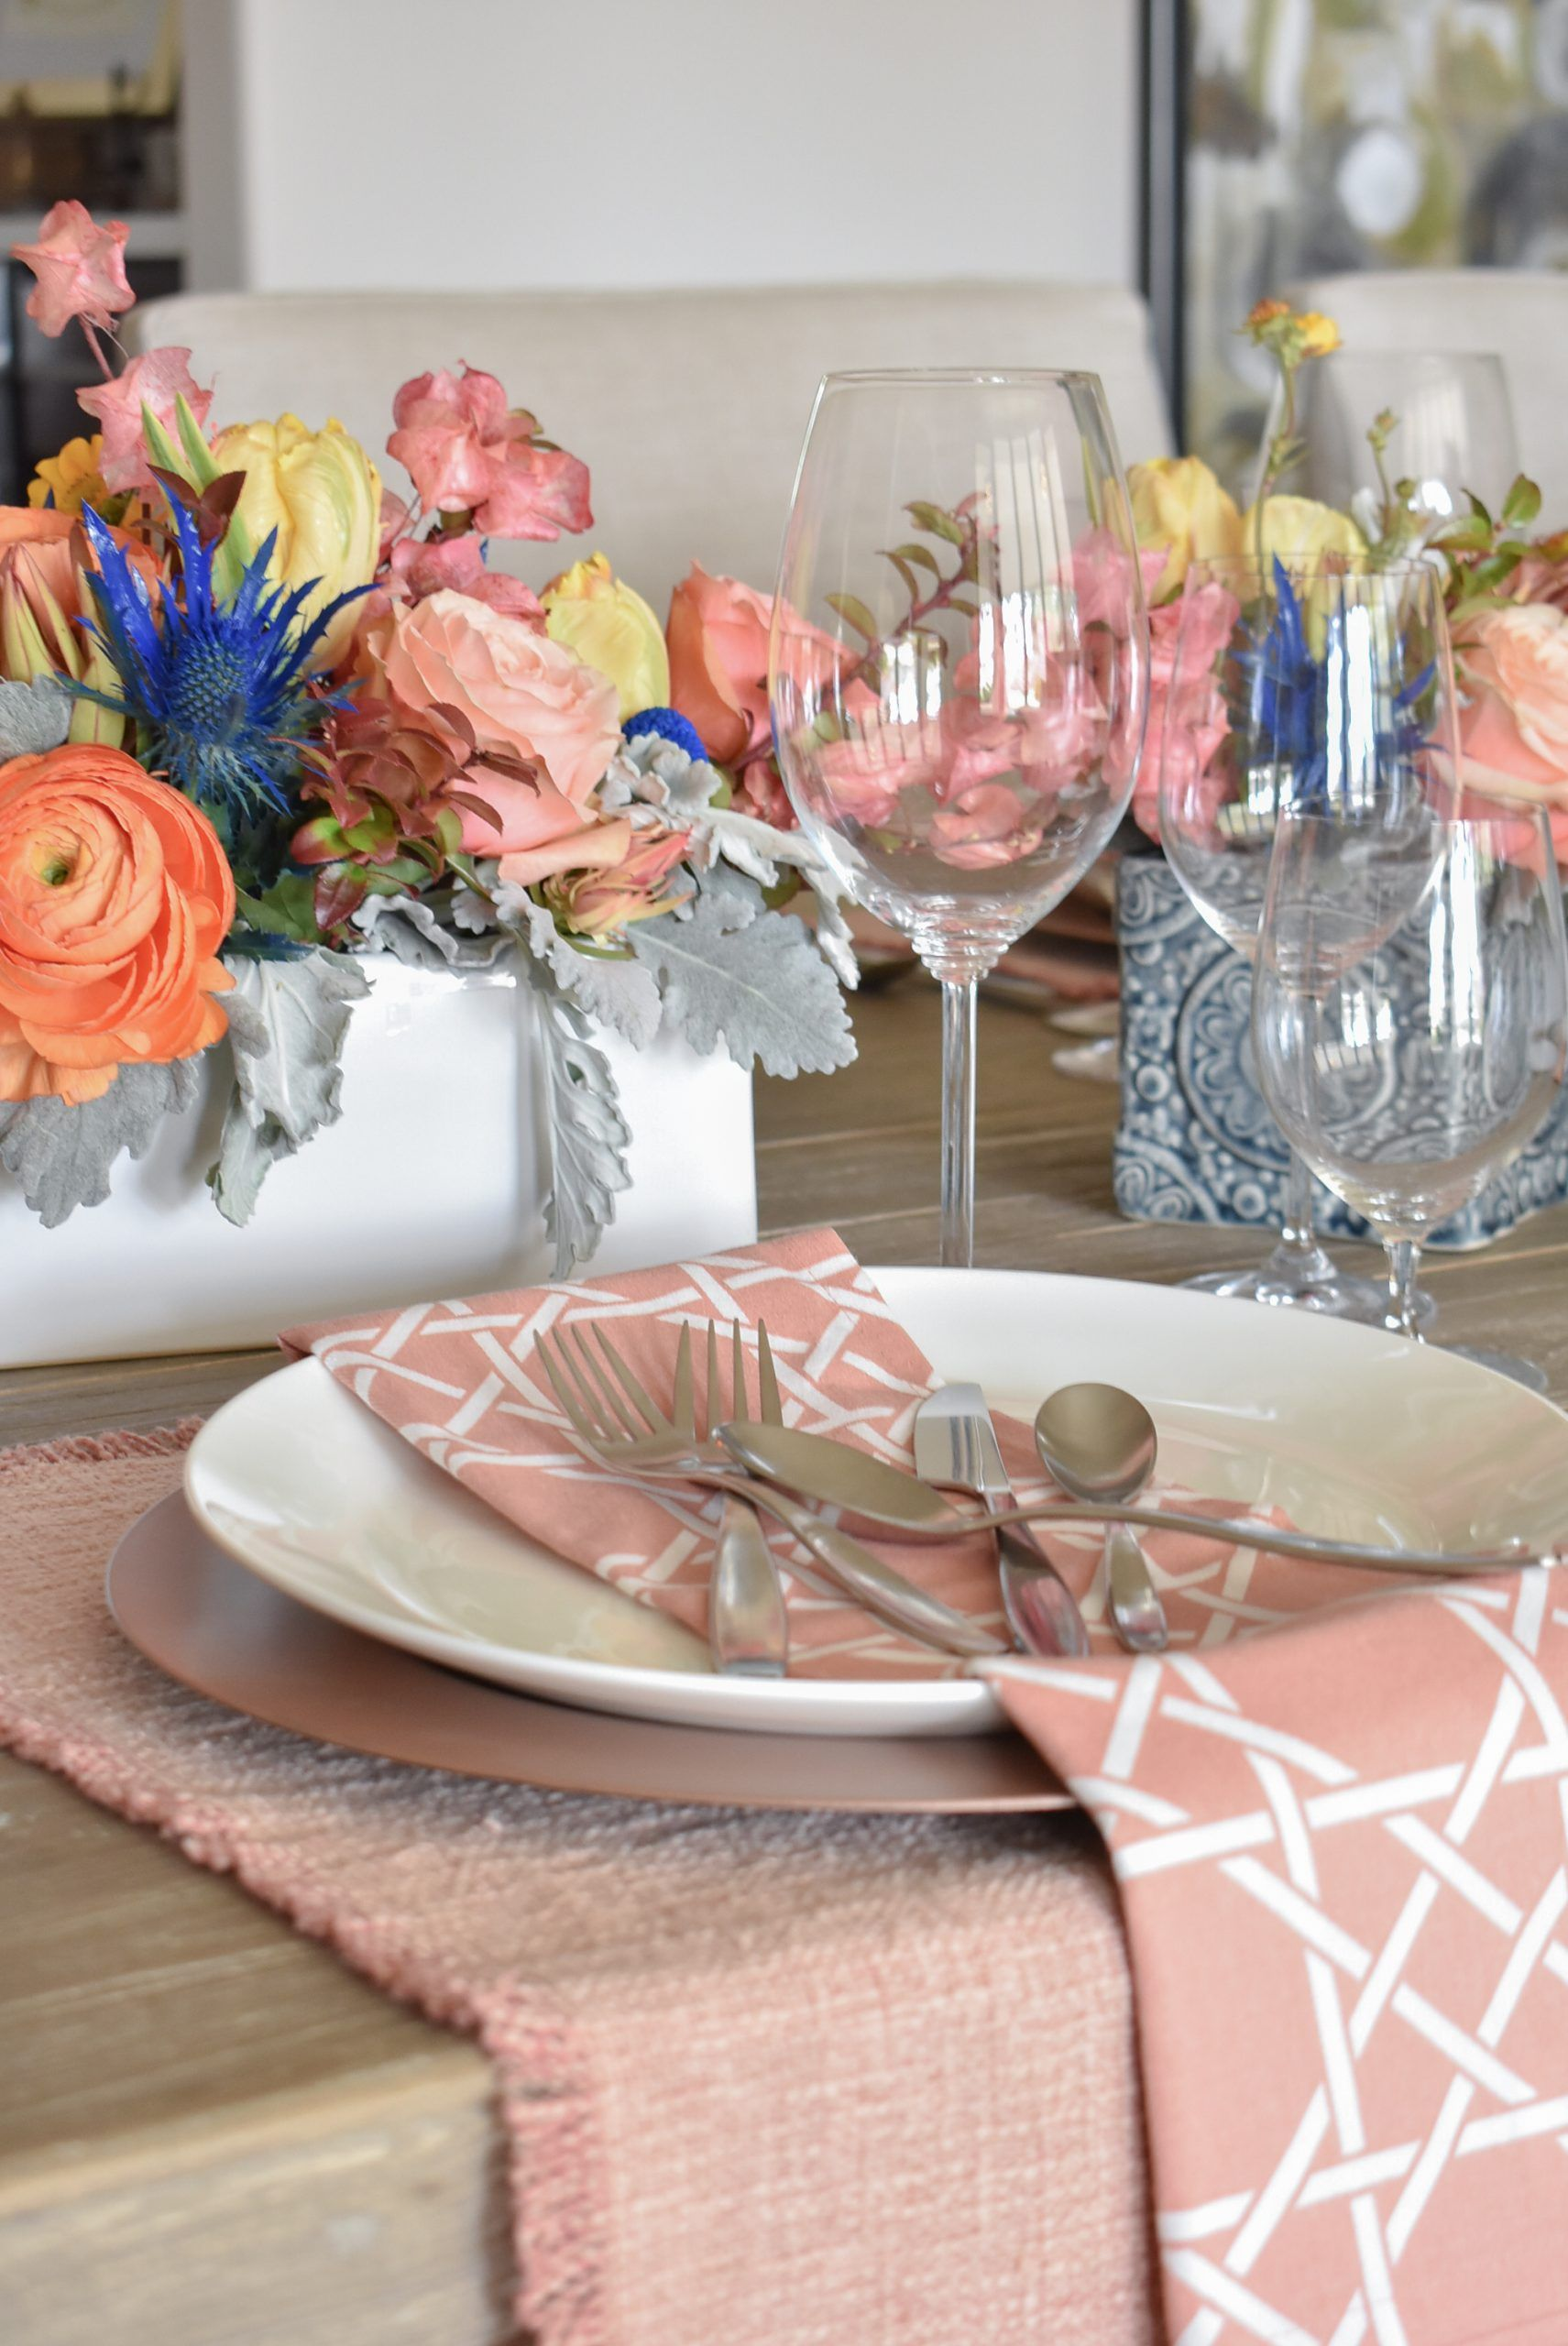 Blush Pink And Blue Spring Tablescape In 2020 Spring Tablescapes Pink Placemats Tablescapes